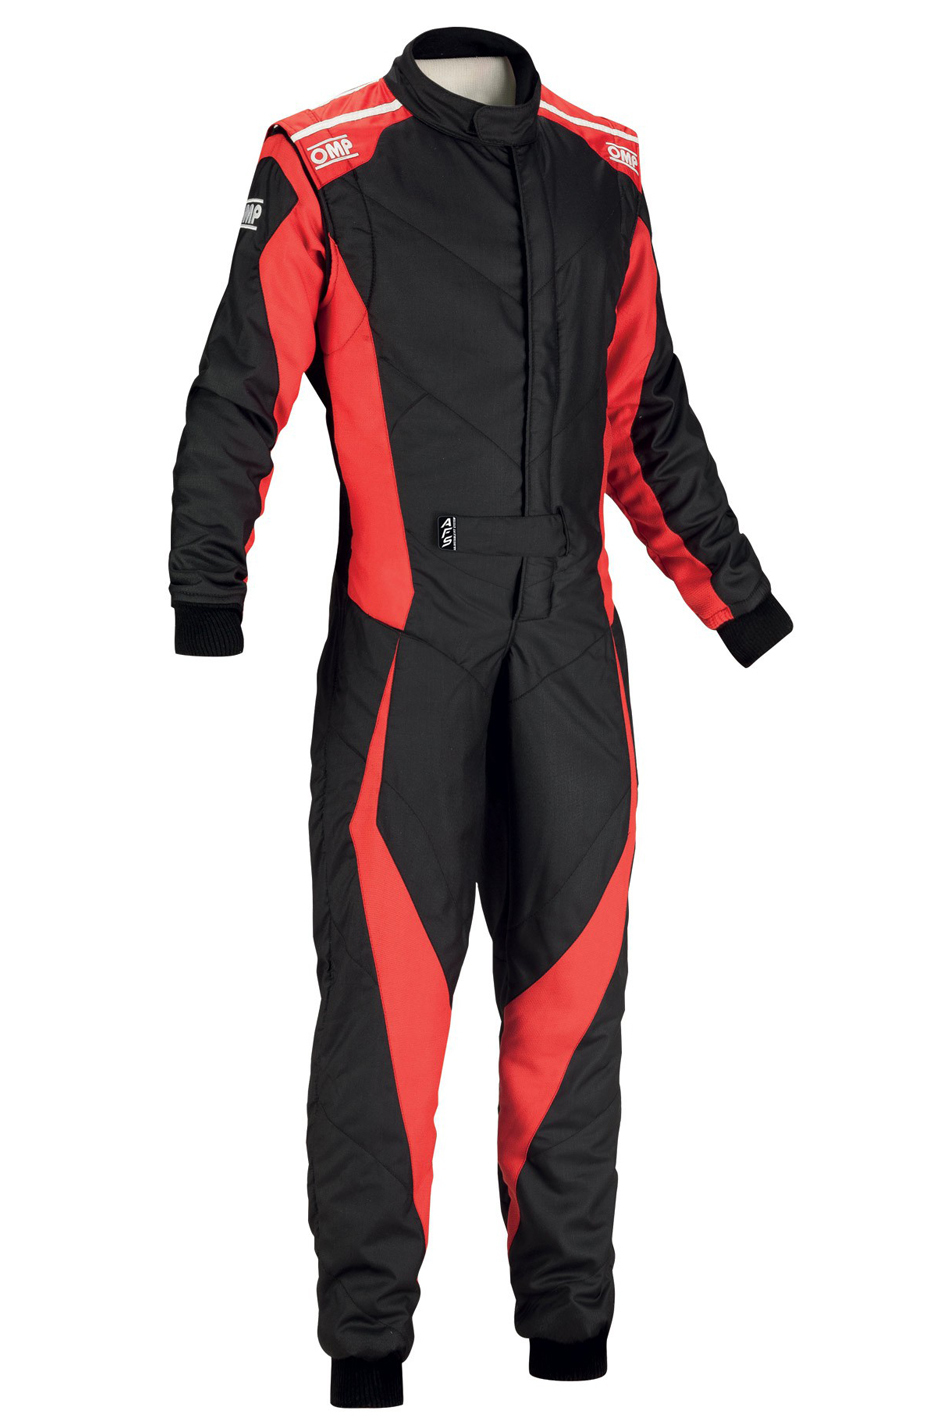 OMP Racing IA0185907356 Suit, Tecnica Evo, Driving, 1 Piece, SFI 3.2A/5, FIA Approved, Double Layer, Fire Retardant Fabric, Black / Red, Size 56, Large, Each